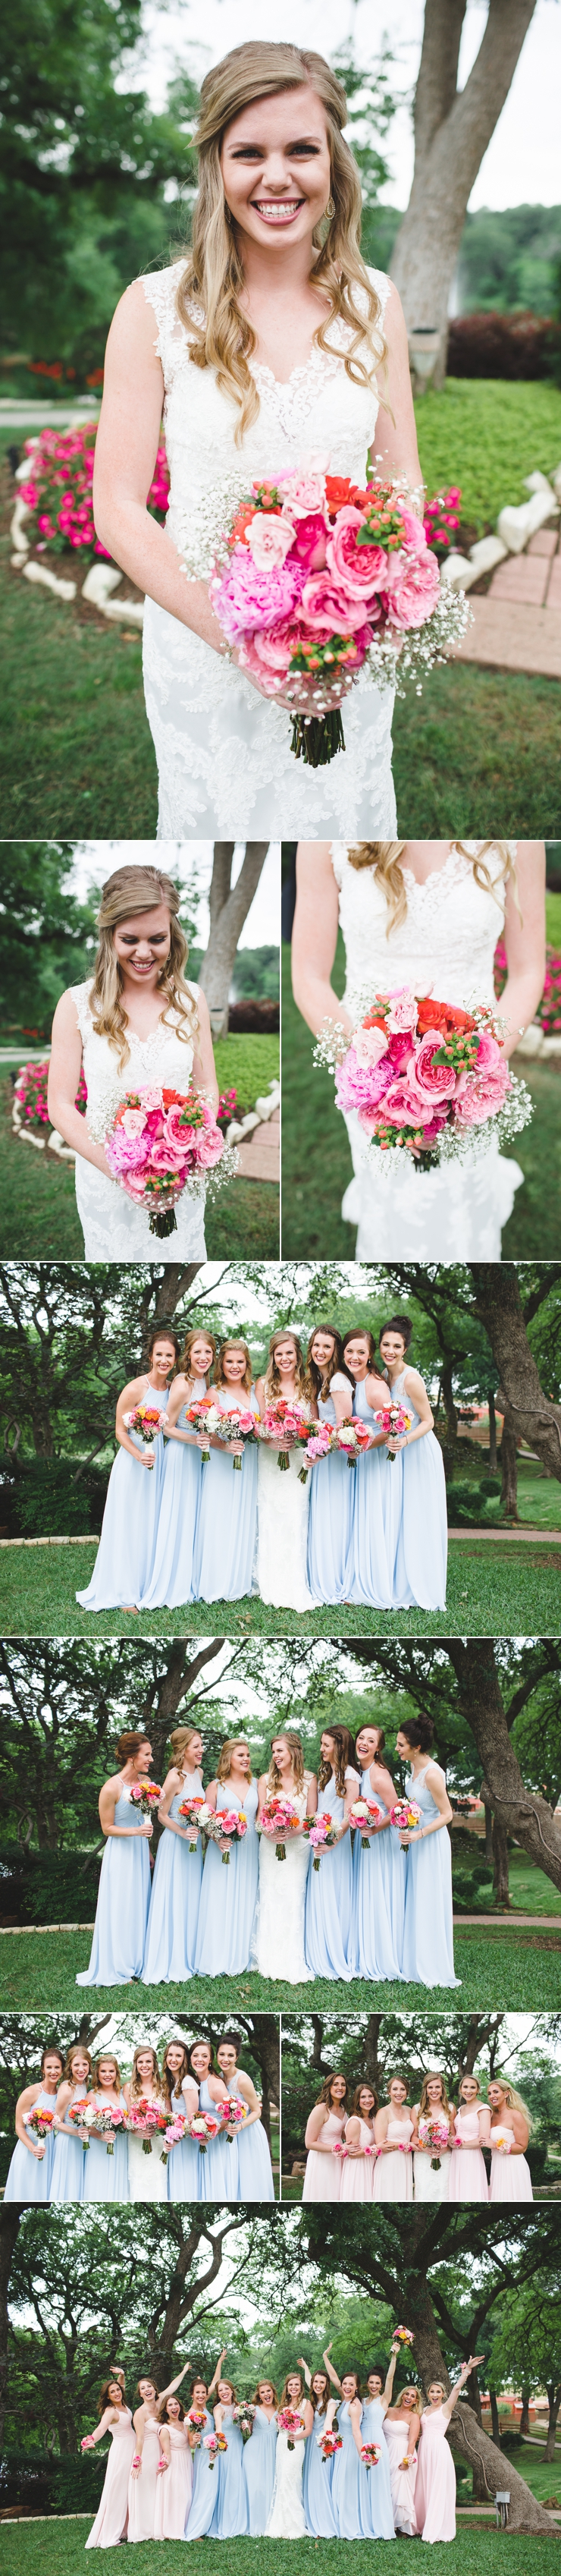 White Wedding - Blog Collages 5.jpg